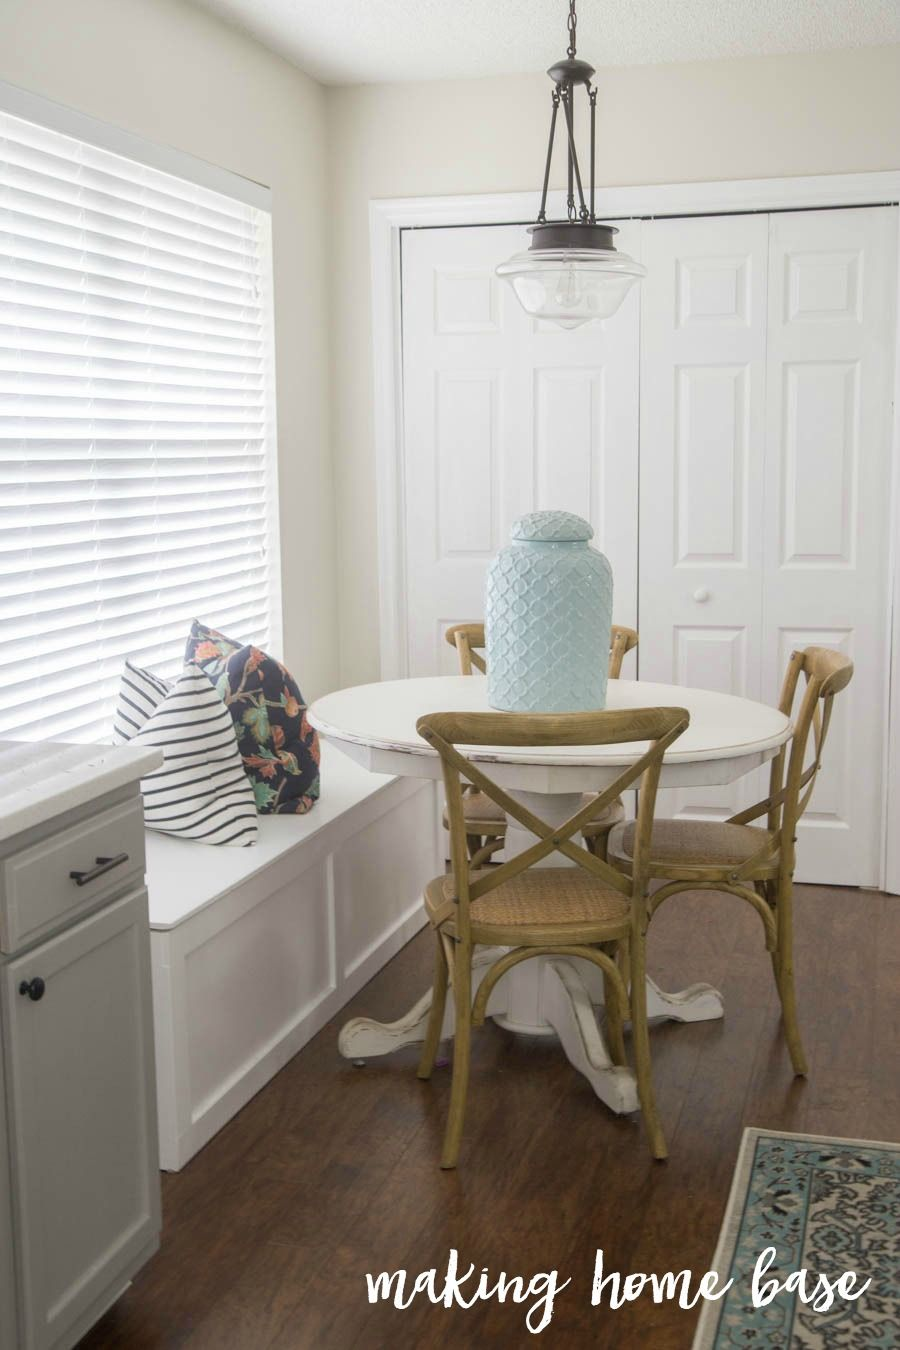 How to Build a Window Seat with Storage - DIY Tutorial | Pinterest ...